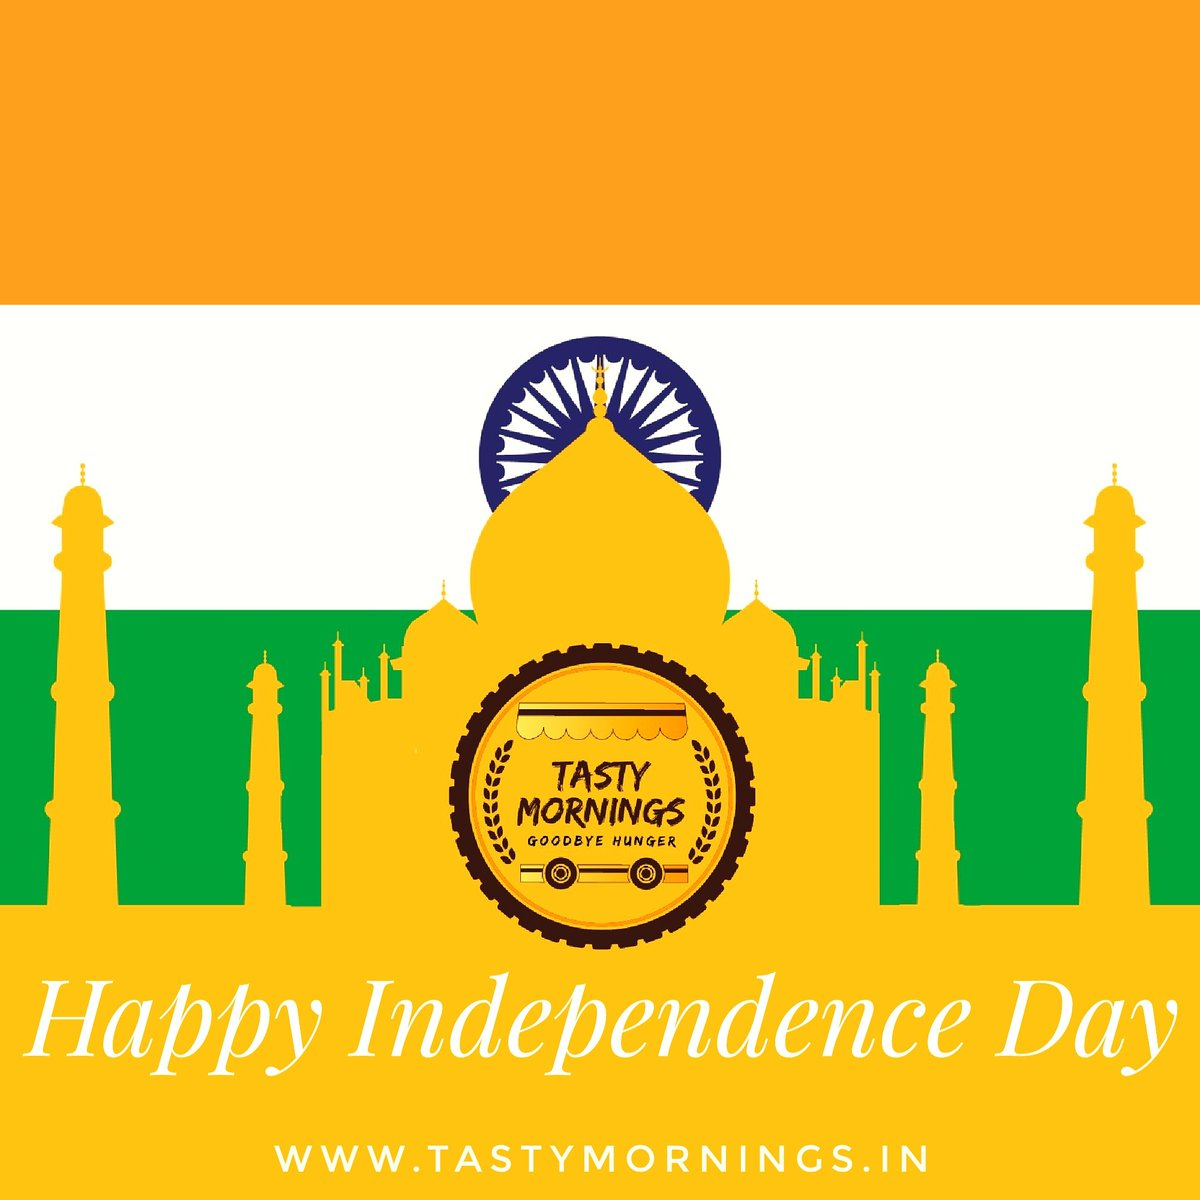 This Independence Day let's take a pledge to protect the peace and unity of our great nation. Happy Independence Day! #independenceday #india #Freedom #tasty #morning https://t.co/oJf2fjYjFs